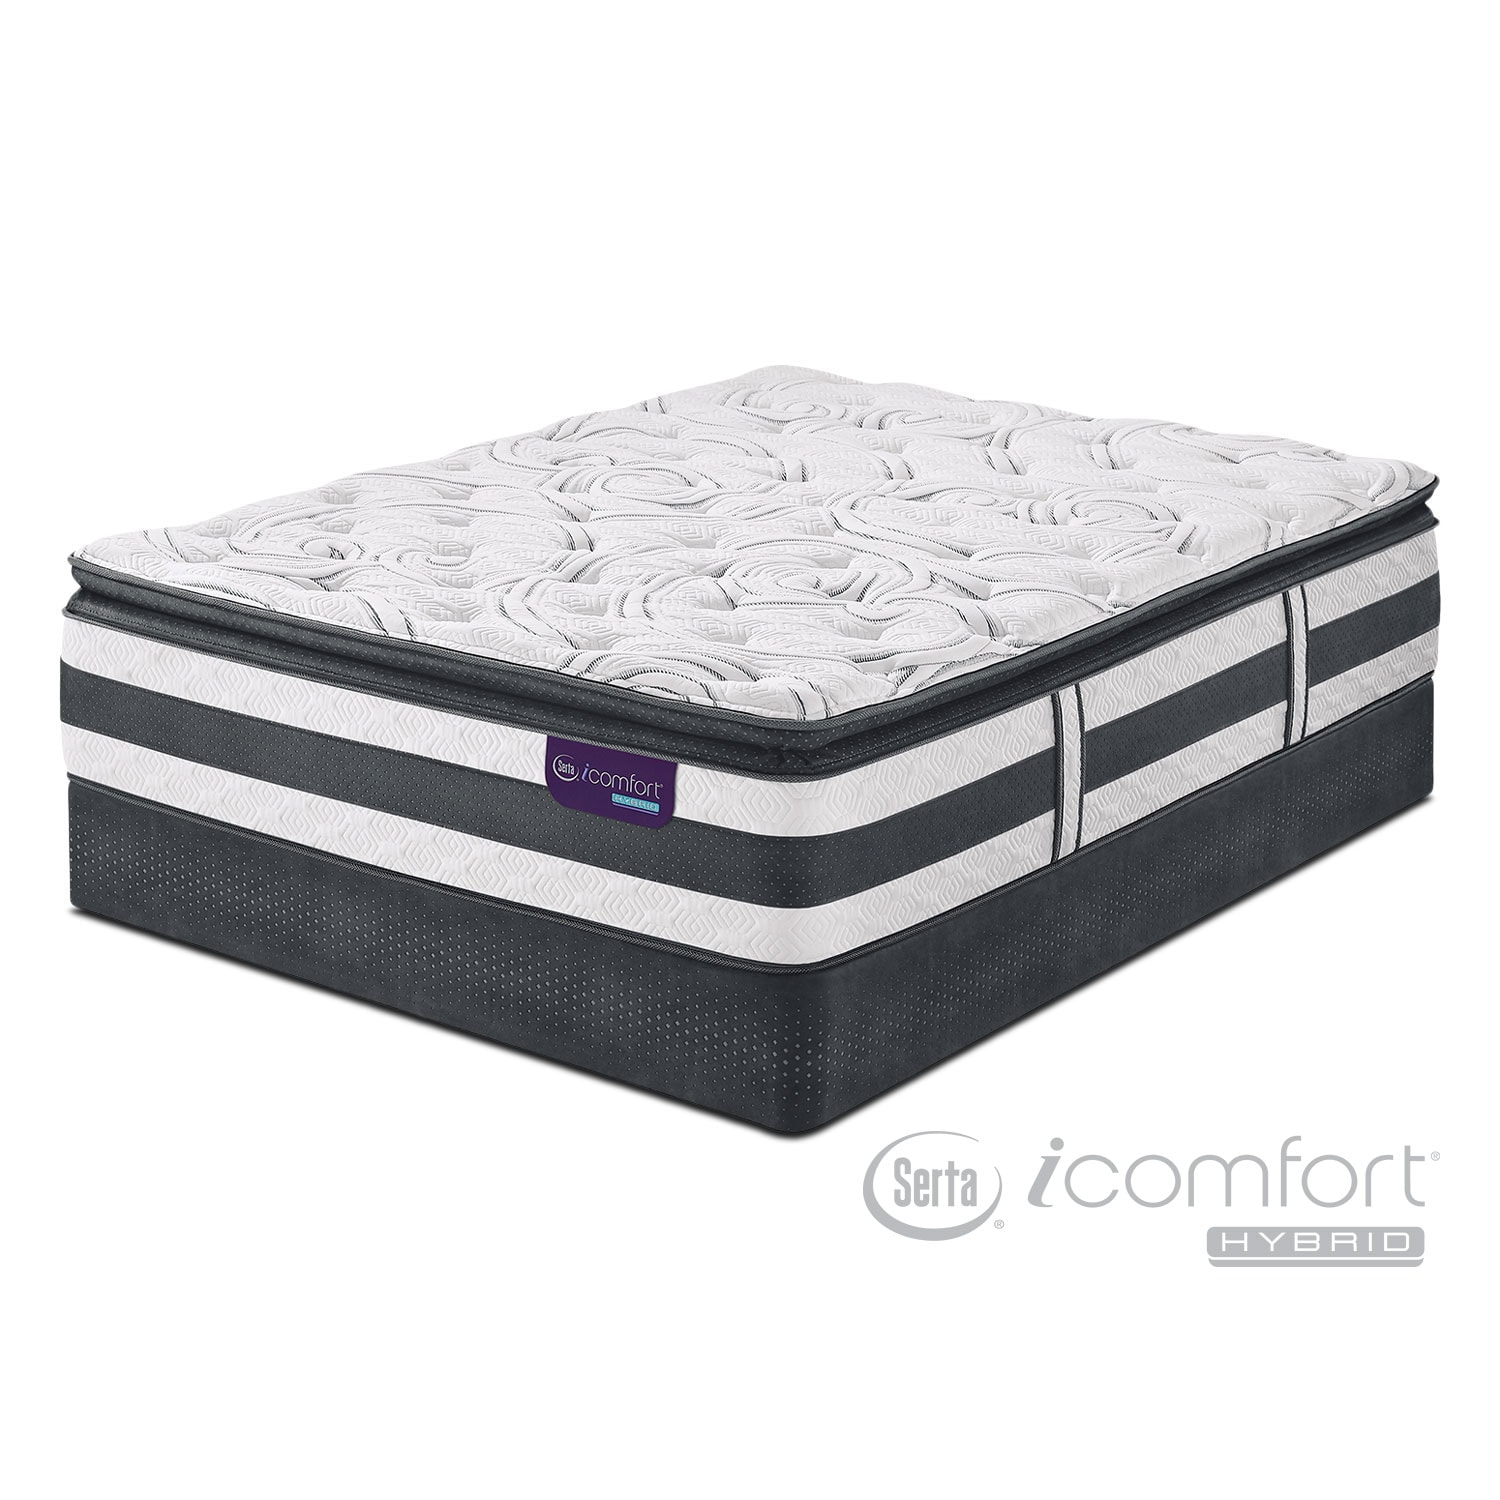 Mattresses and Bedding - Observer Plush Full Mattress and Foundation Set